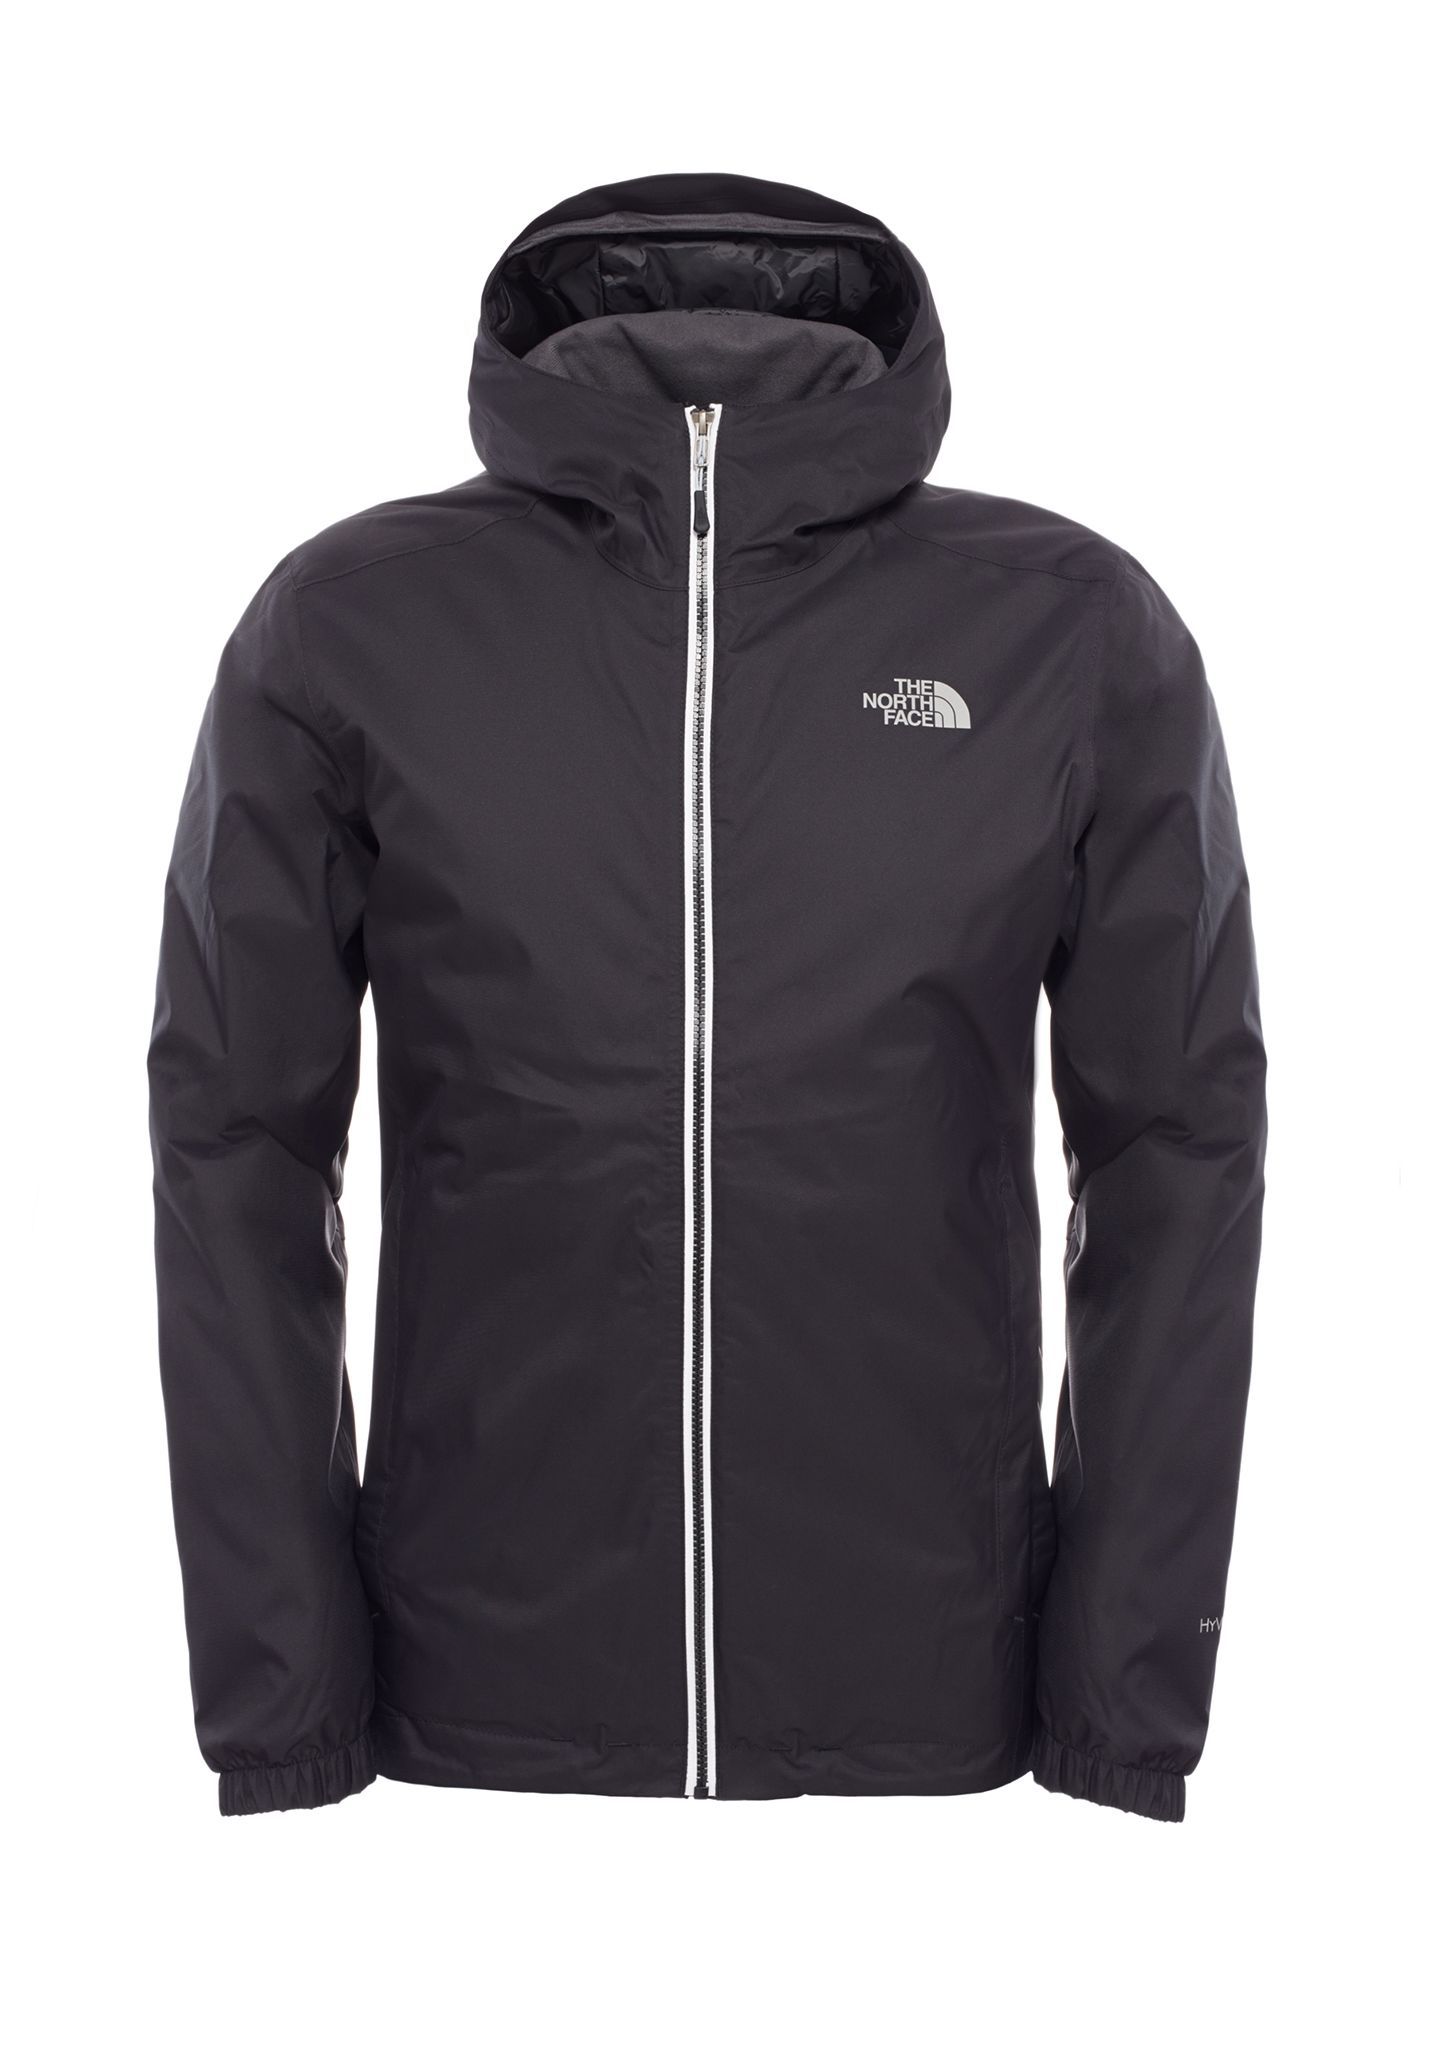 0c8df3cdbca35 THE NORTH FACE Quest Insulated - Functional Jacket for Men - Black ...